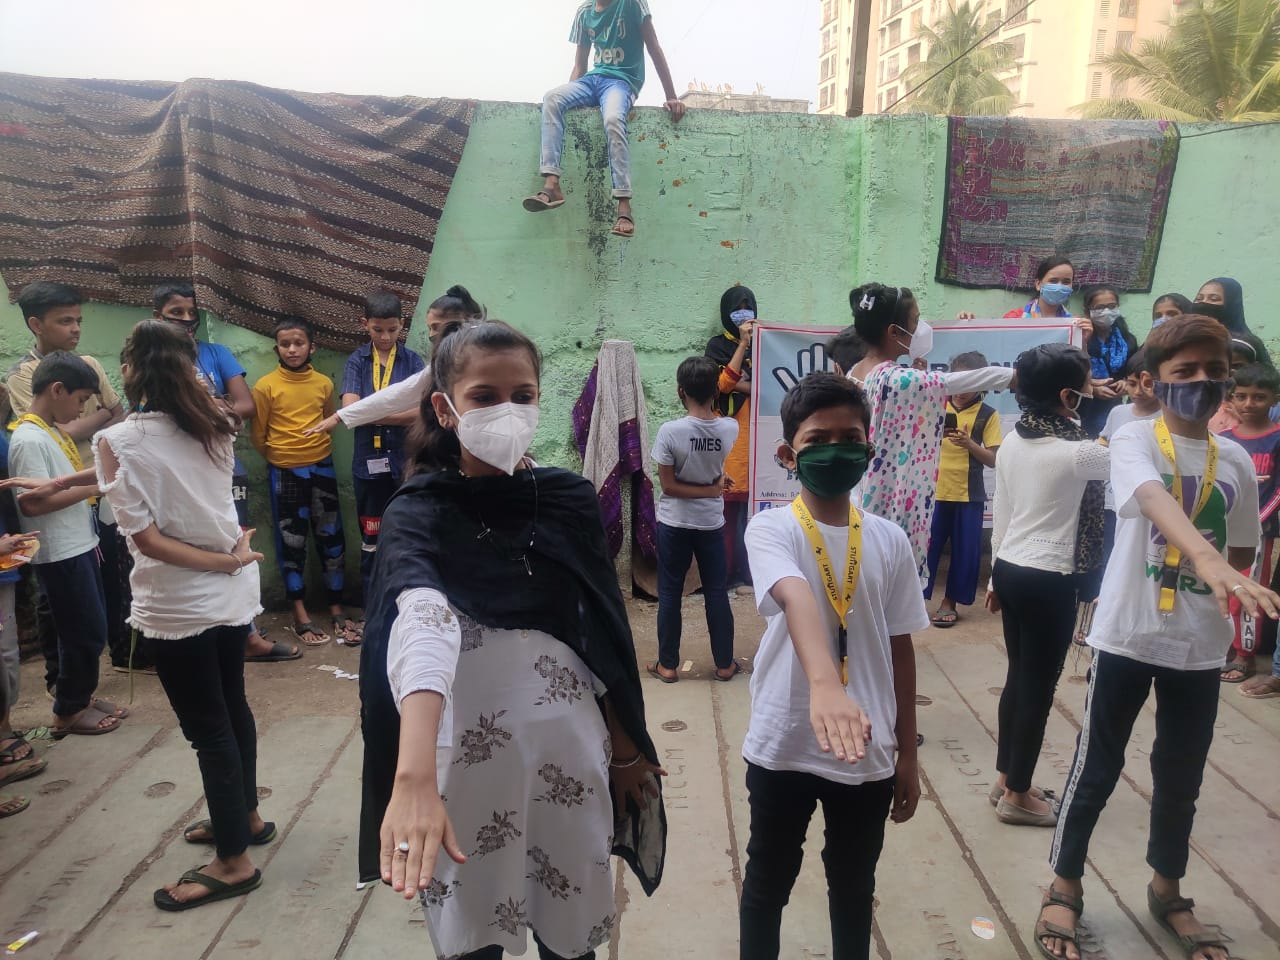 Street play by children and youth